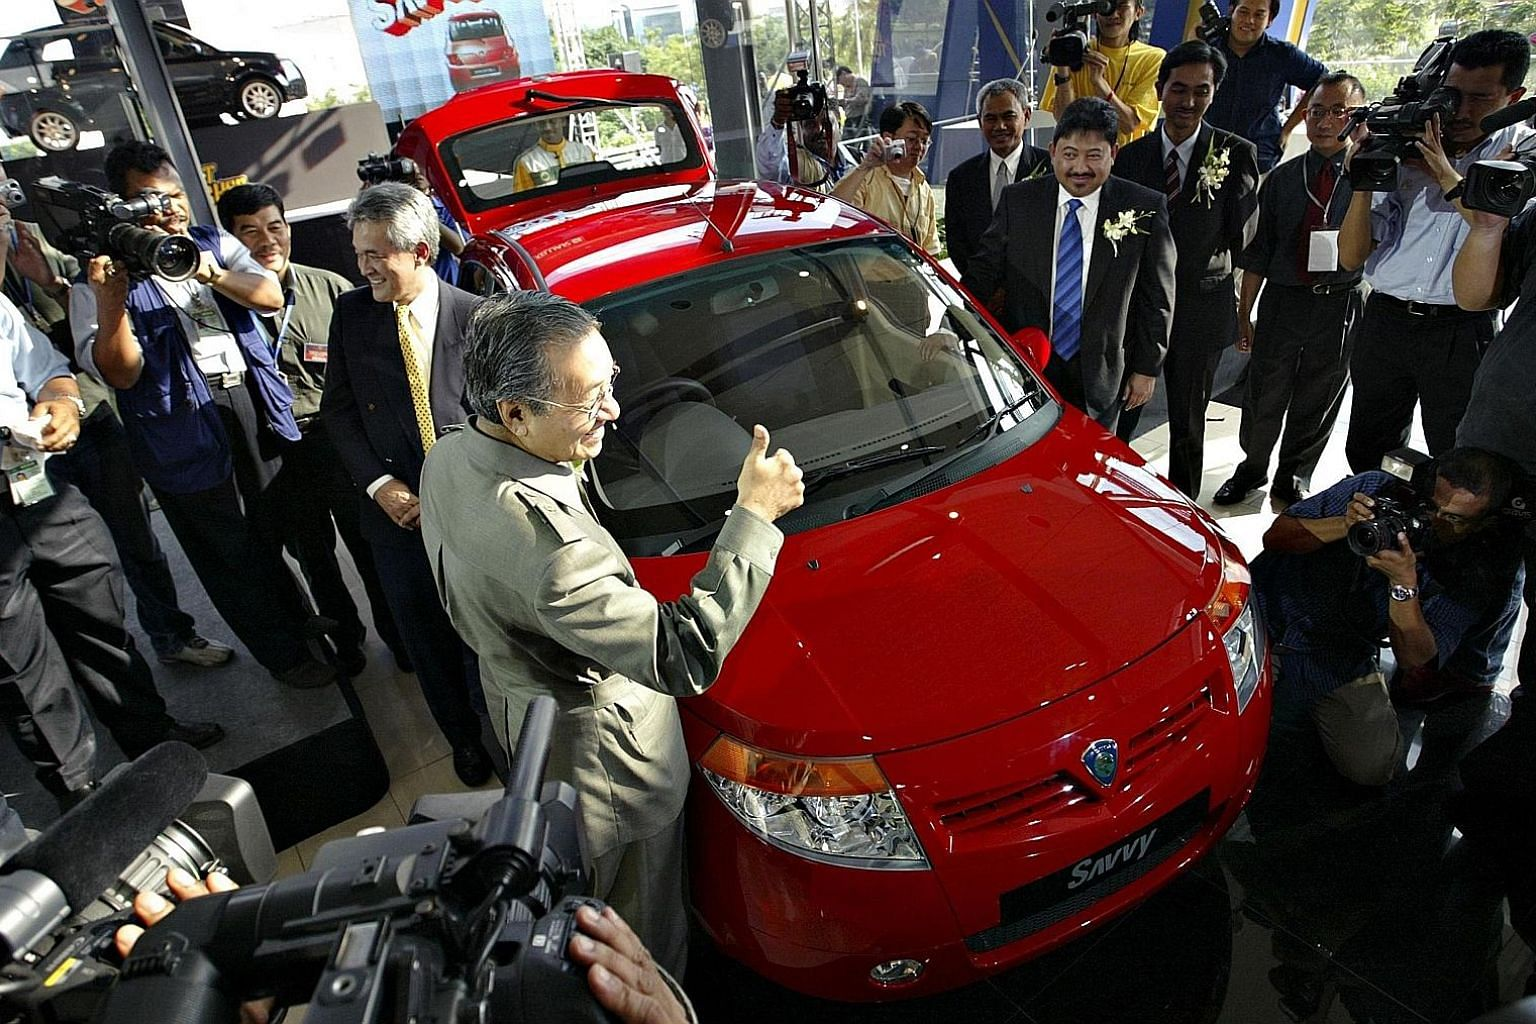 Tun Dr Mahathir Mohamad giving a thumbs up at the launch of the then new model Proton Savvy on June 8, 2005. The Proton national car project, Malaysia's first, was launched by Dr Mahathir in 1983. Perodua, the second national car project, was establi